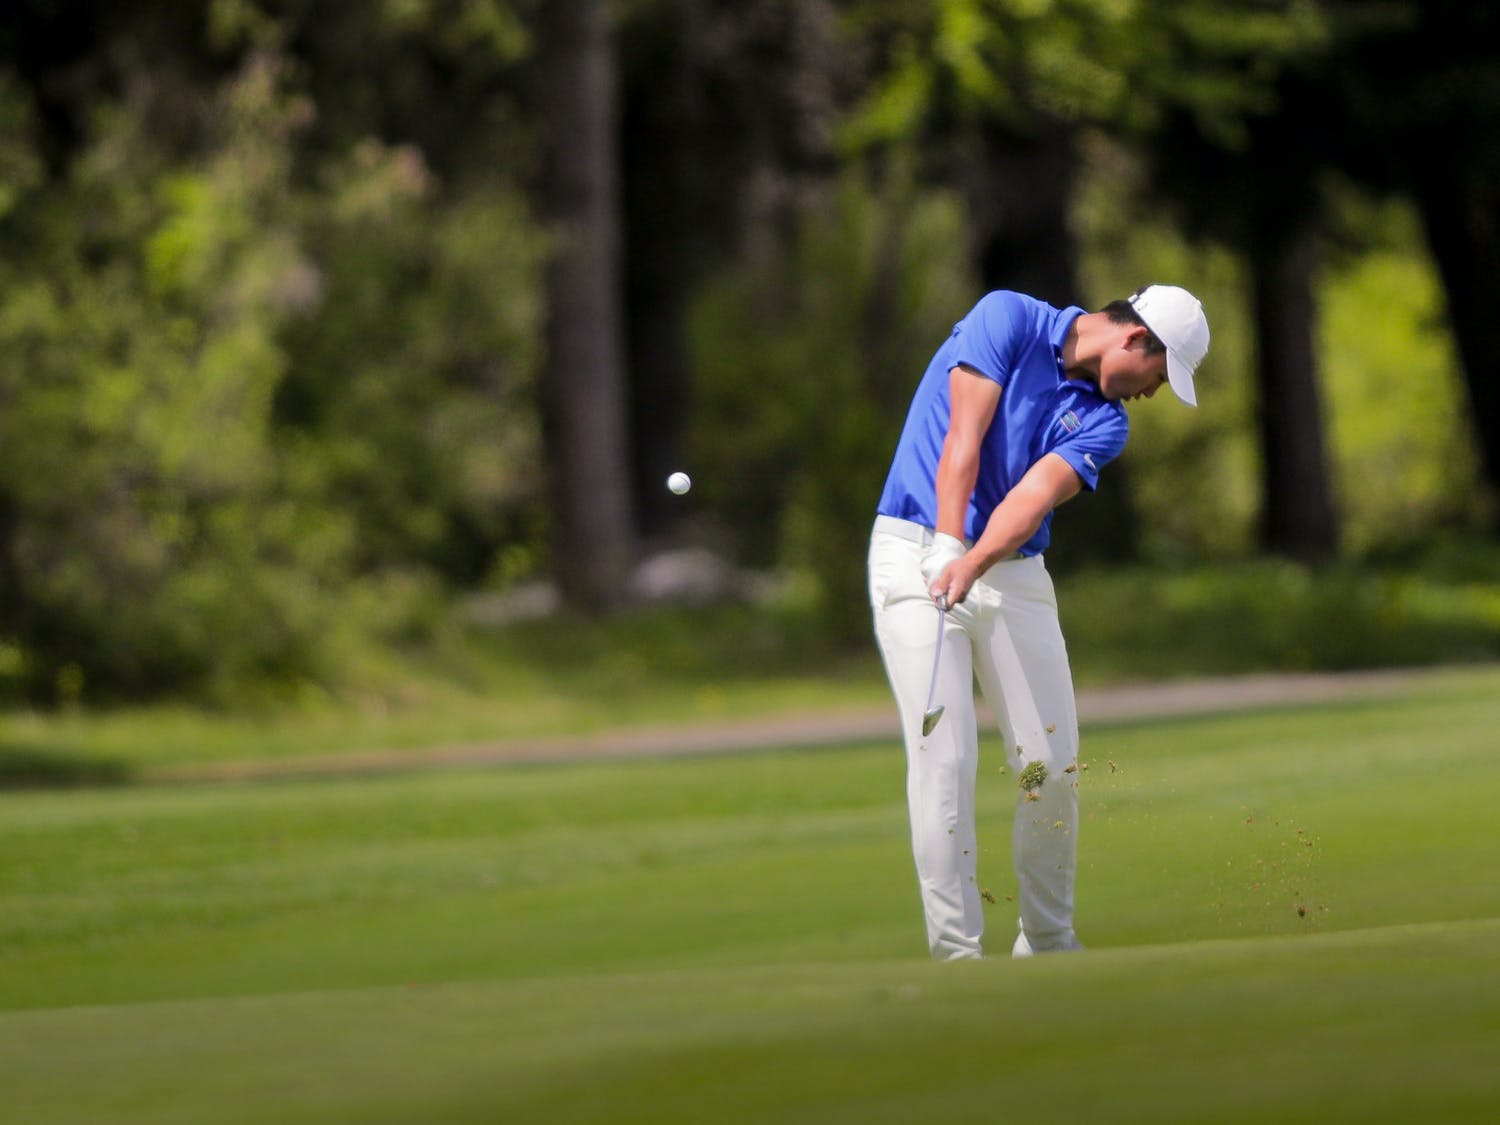 Yuxin Lin of The University of Florida men's golf team competes in the first round of the 2021 NCAA  Cle Elum Regional at Tumble Creek Golf Club in Cle Elum, Wash., on May 17, 2021. (Photography by Scott Eklund/Red Box Pictures)